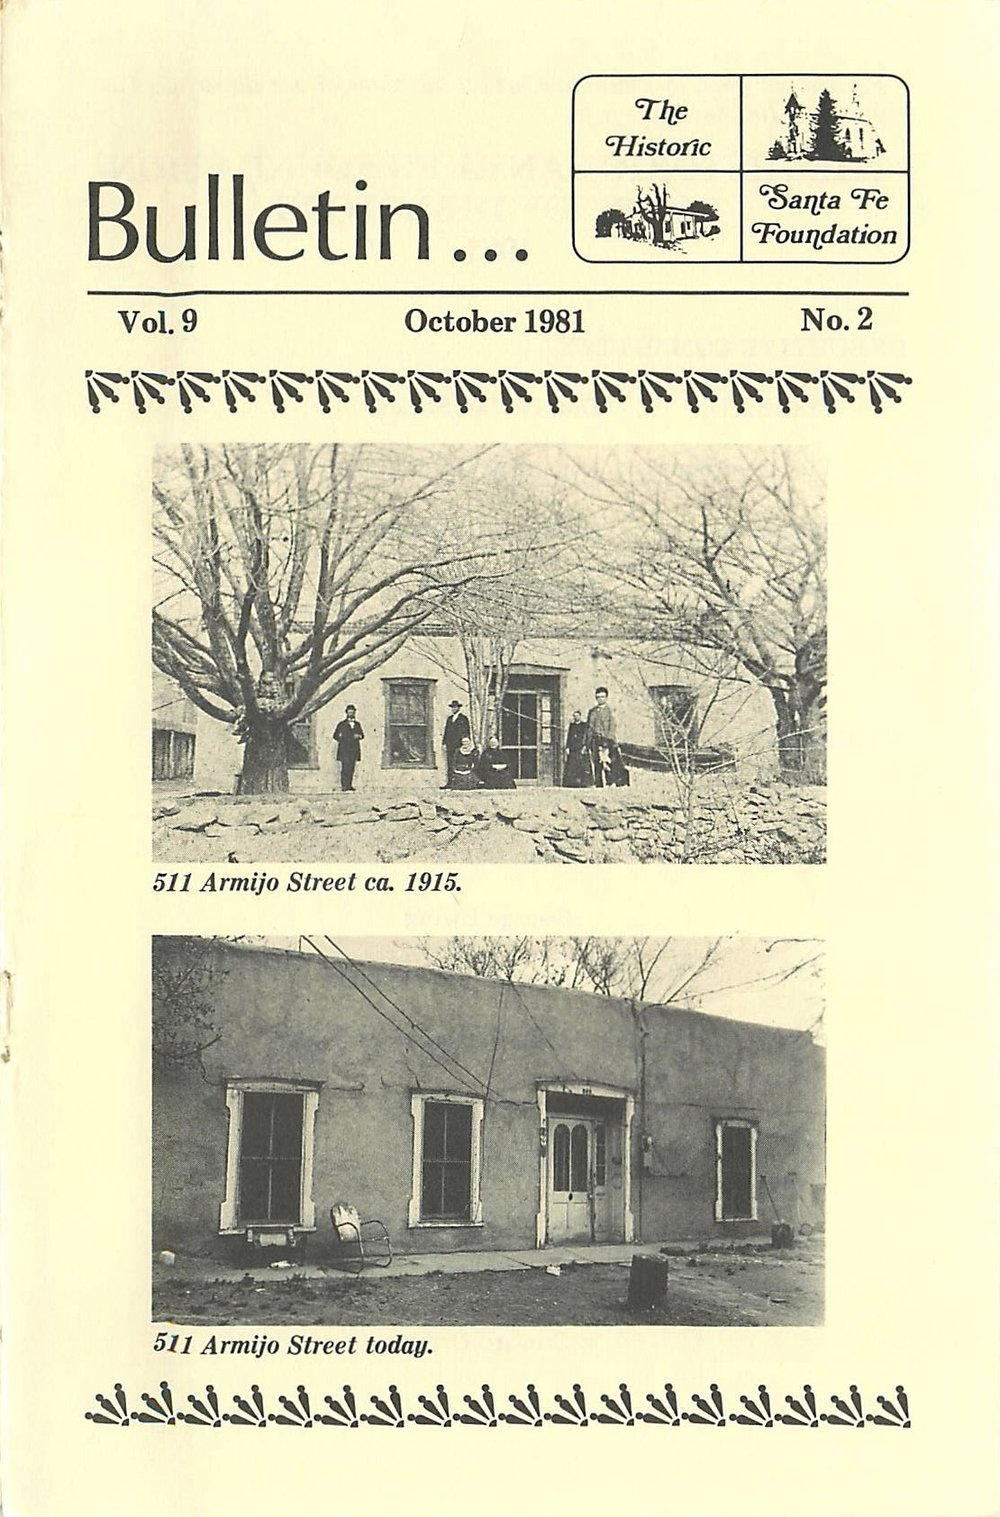 1981 HSFF Bulletin Vol.9 No.2 Cover